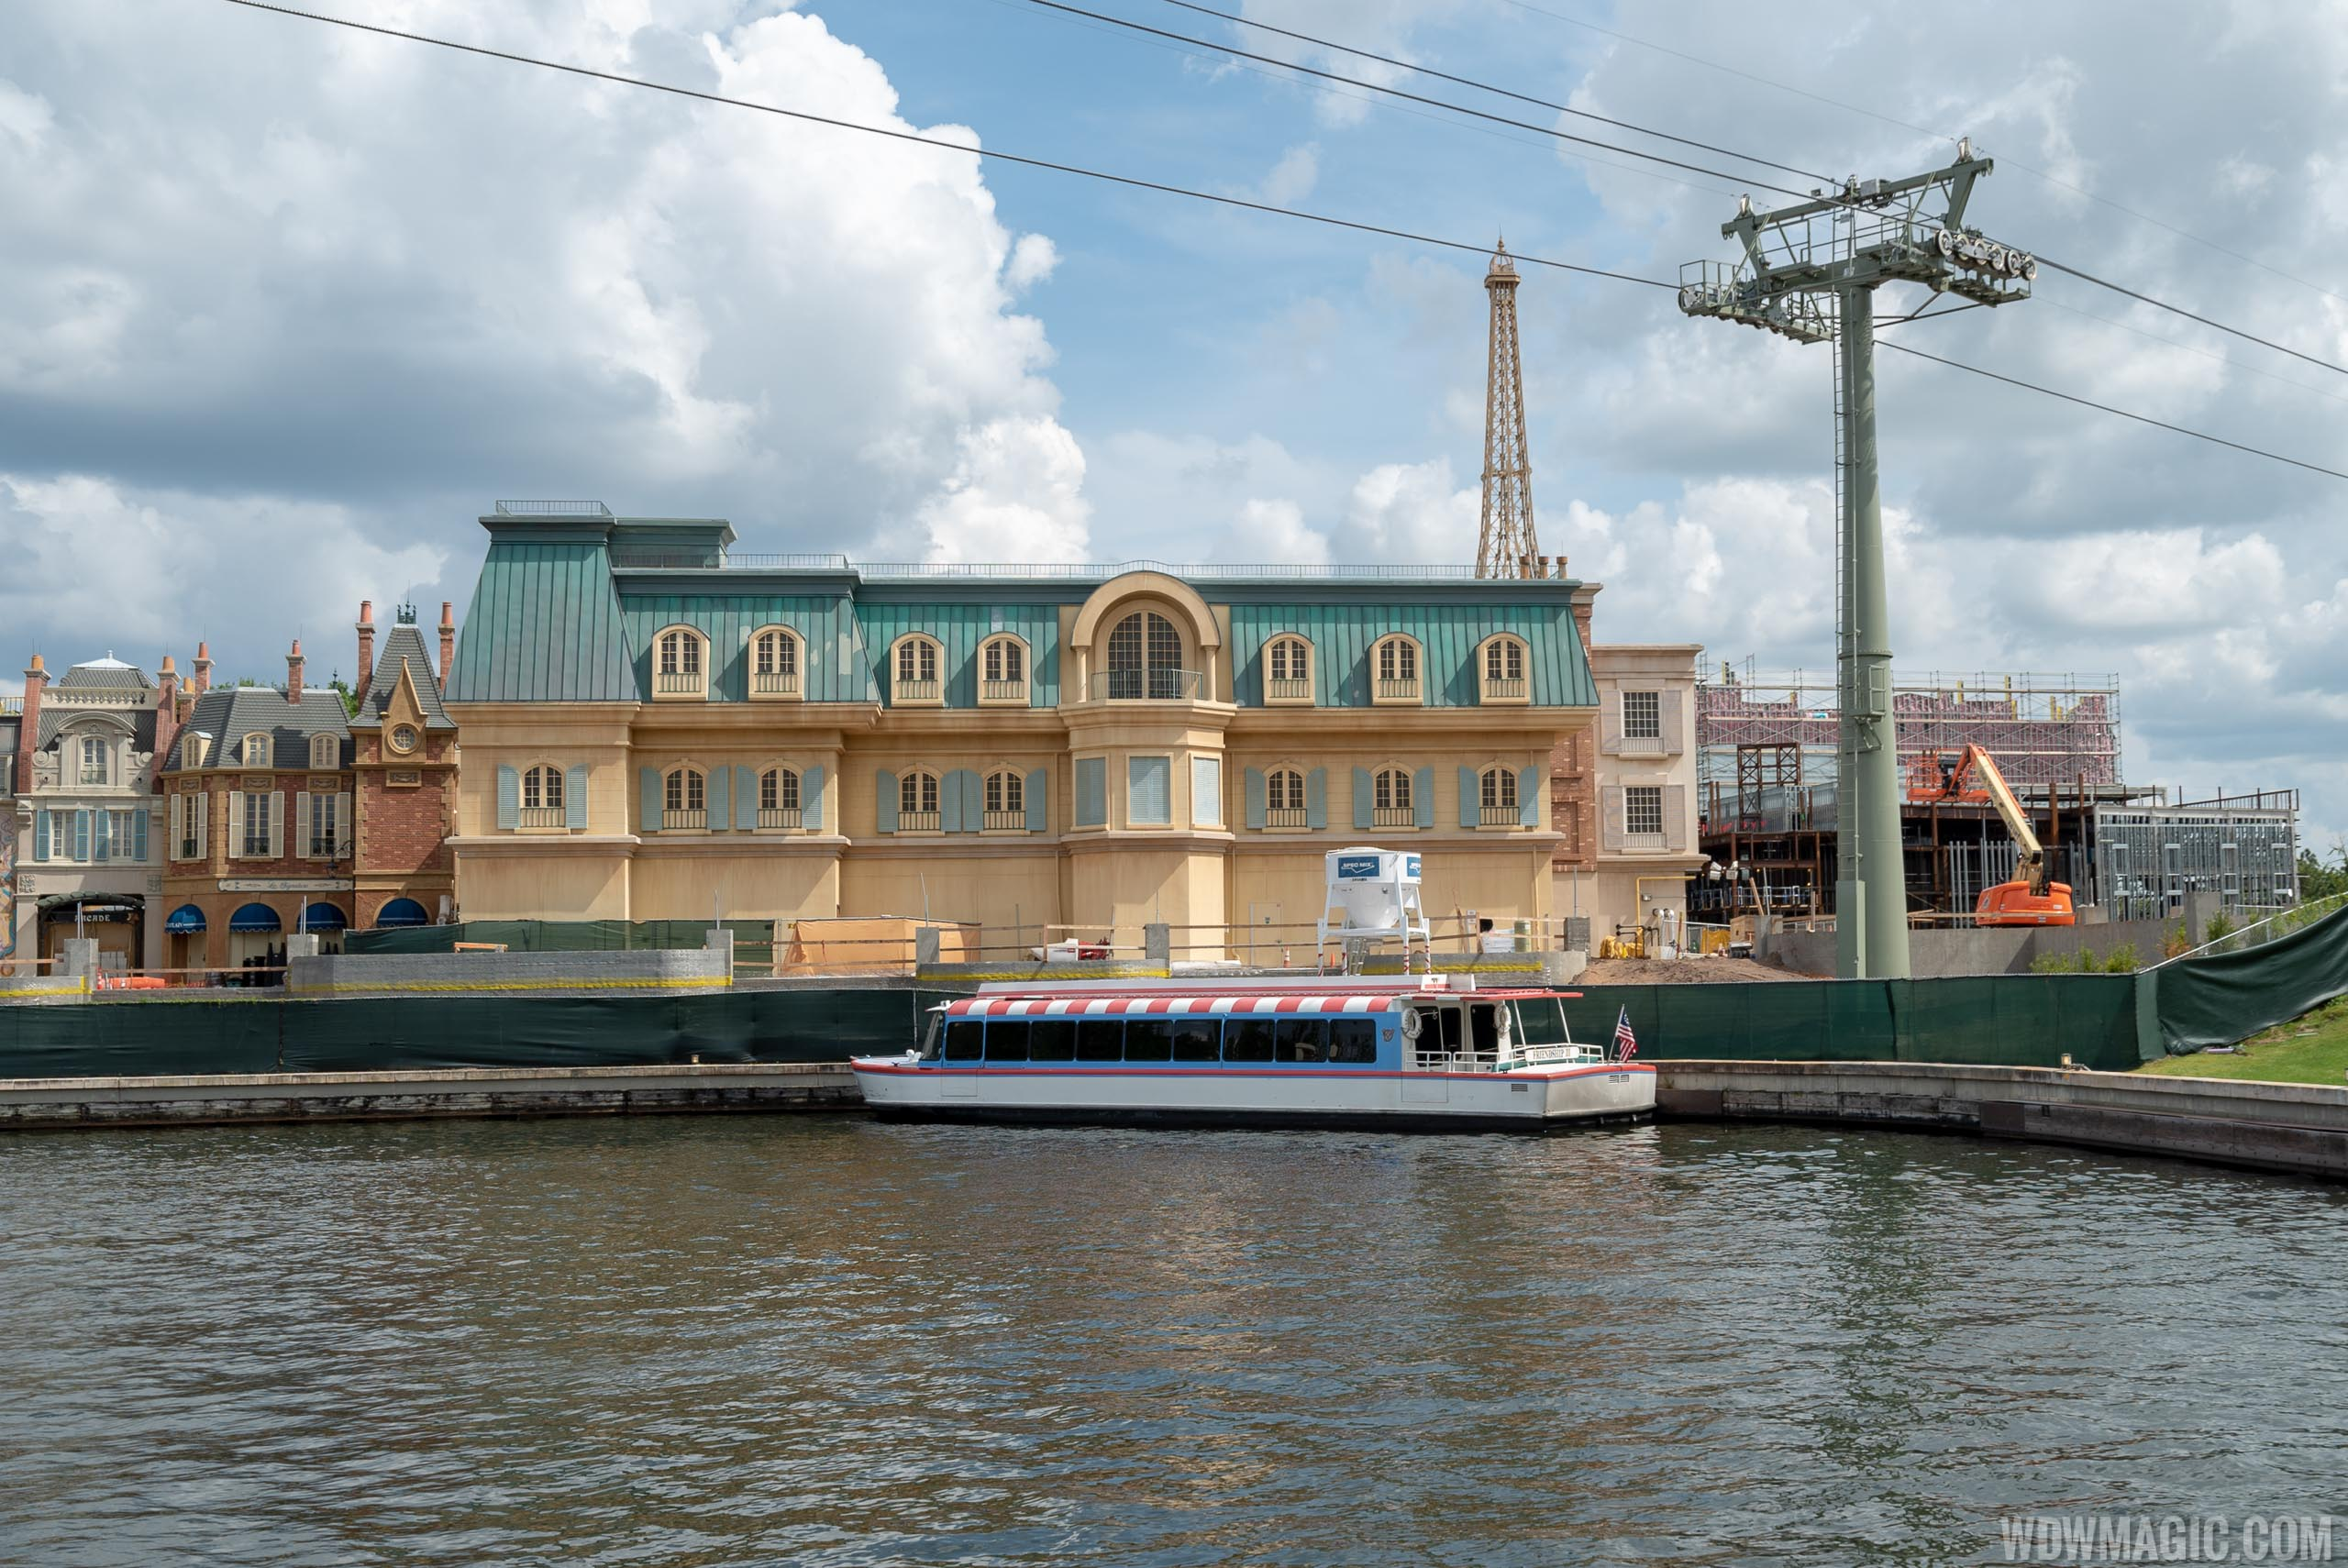 Remy's Ratatouille Adventure construction viewed from International Gateway - April 2019